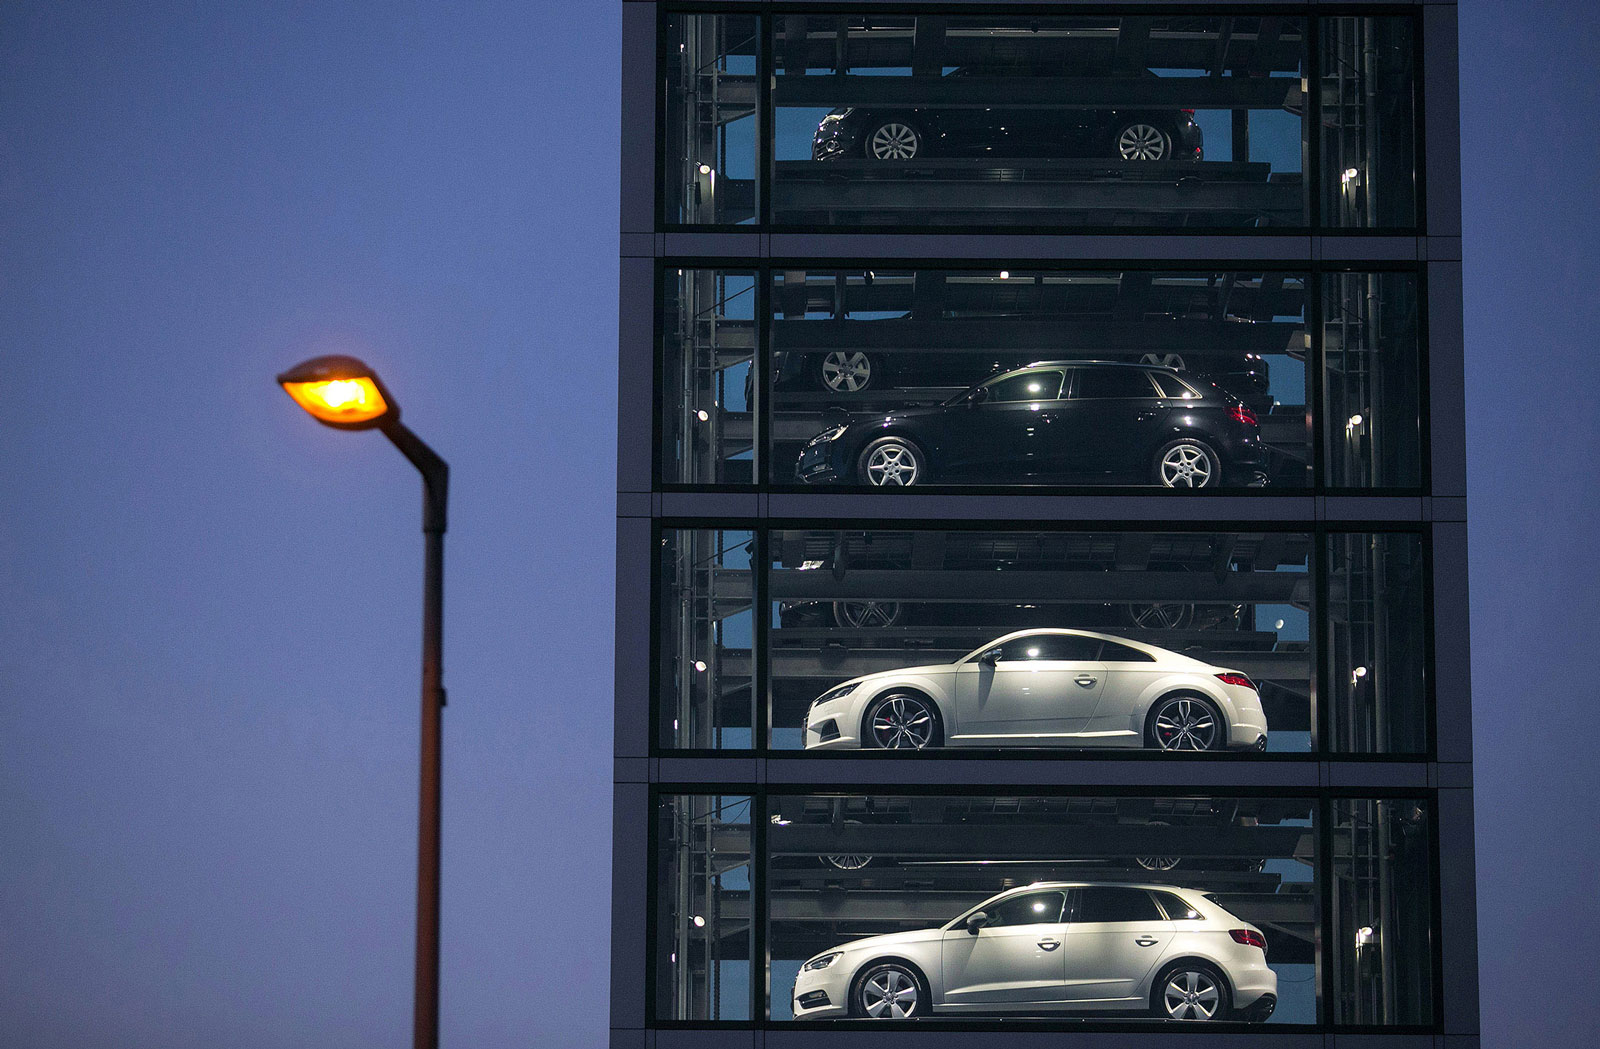 New Audi automobiles, produced by Volkswagen, sit on display at an Audi showroom